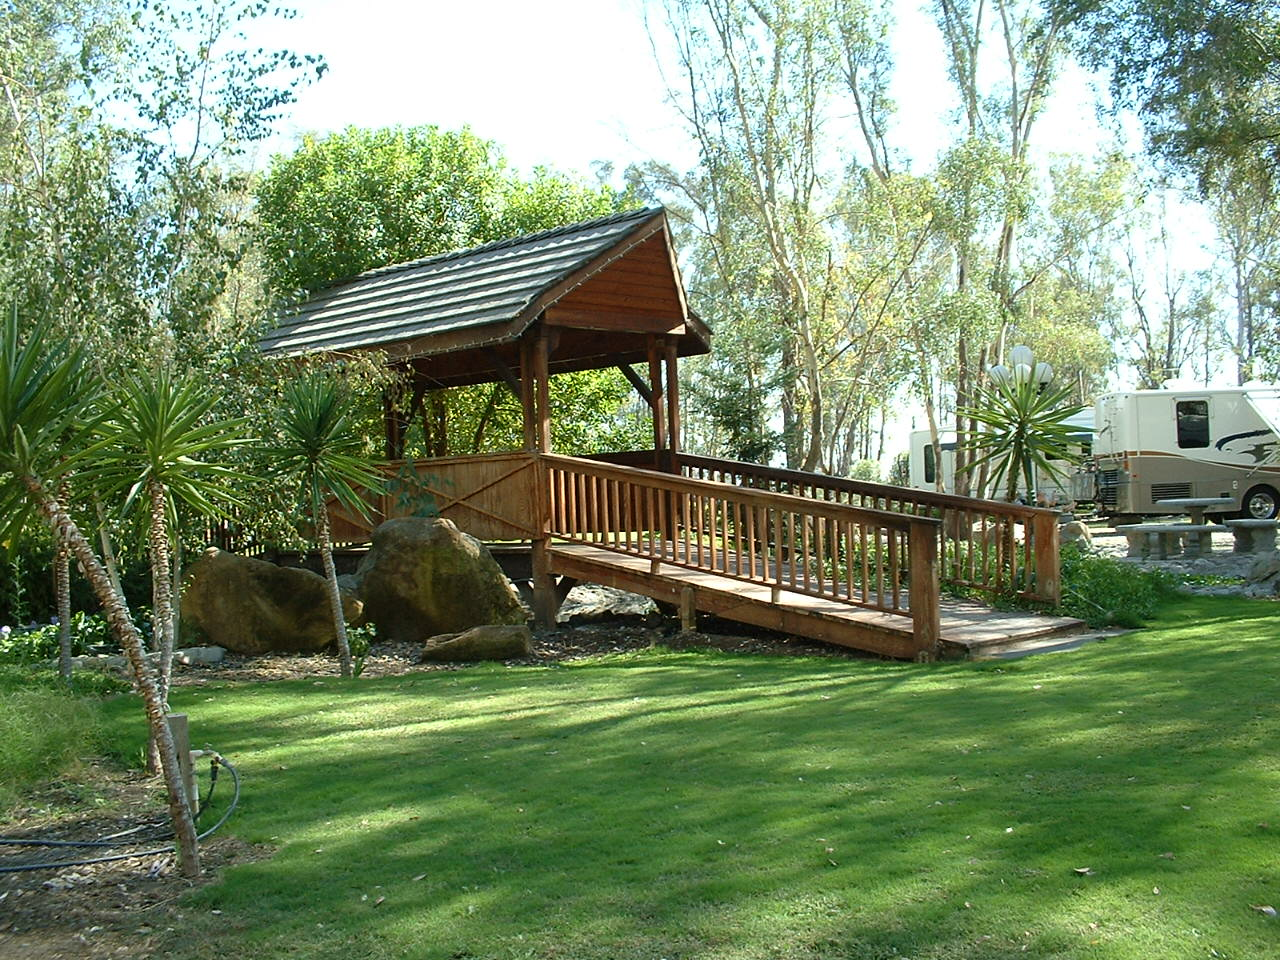 Vineyard Rv Park In Vacaville Vineyard Rv Park 4985